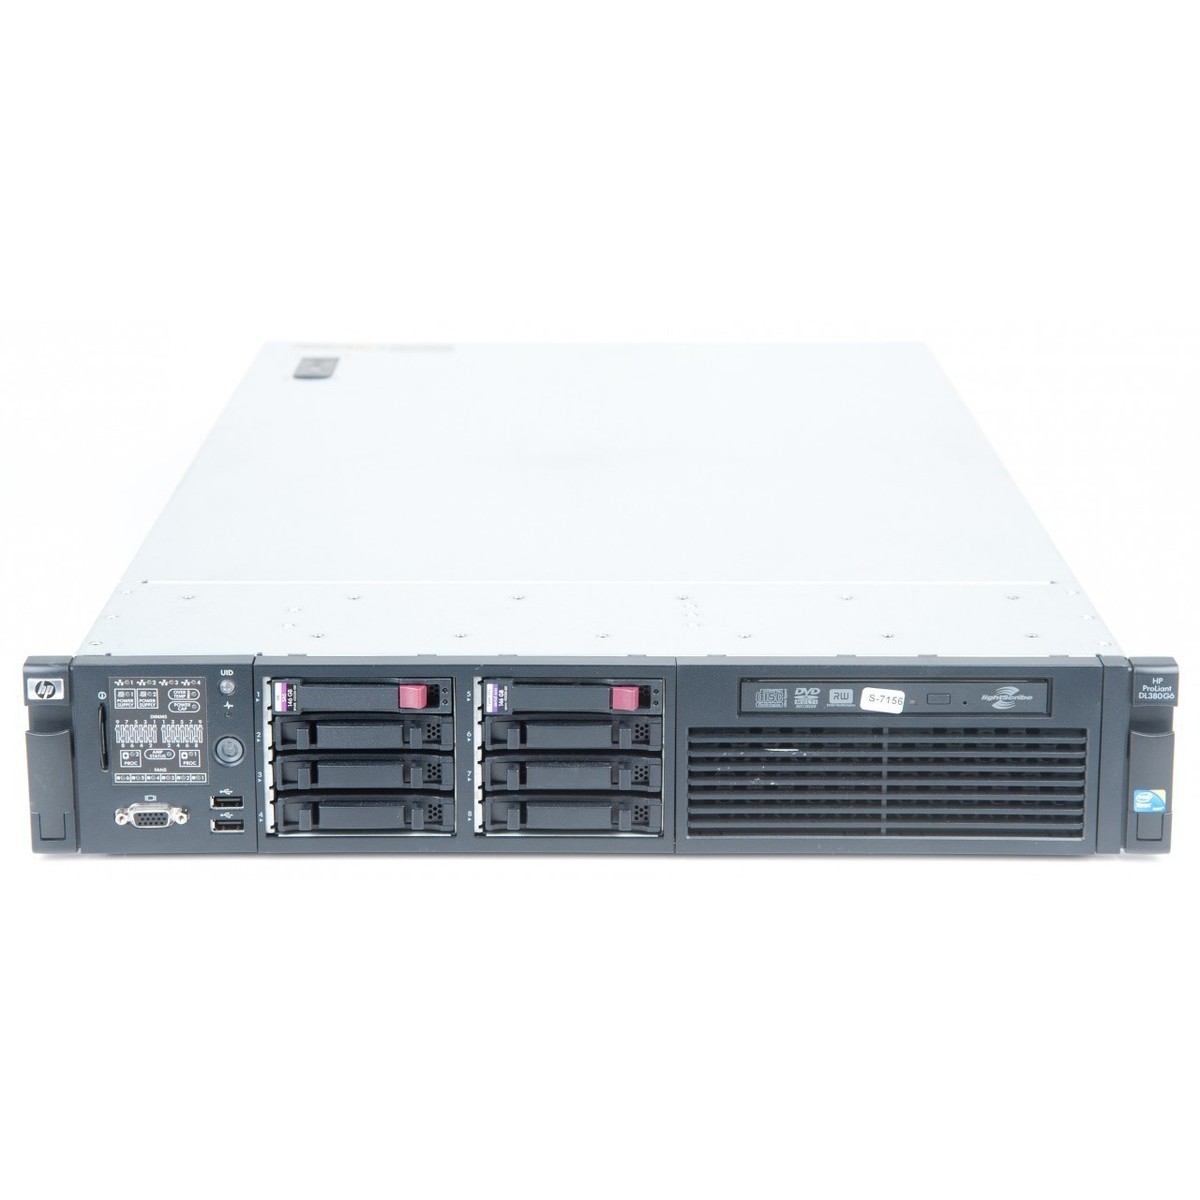 Server Second Hand Proliant Dl380 G6 2 X Xeon Quad Core X5570 2.93ghz 24gb Ddr3 2 X 146gb Sas Raid 2xpsu Soft Preinstalat Windows Server 2012 Essentials Rok 25 Clienti